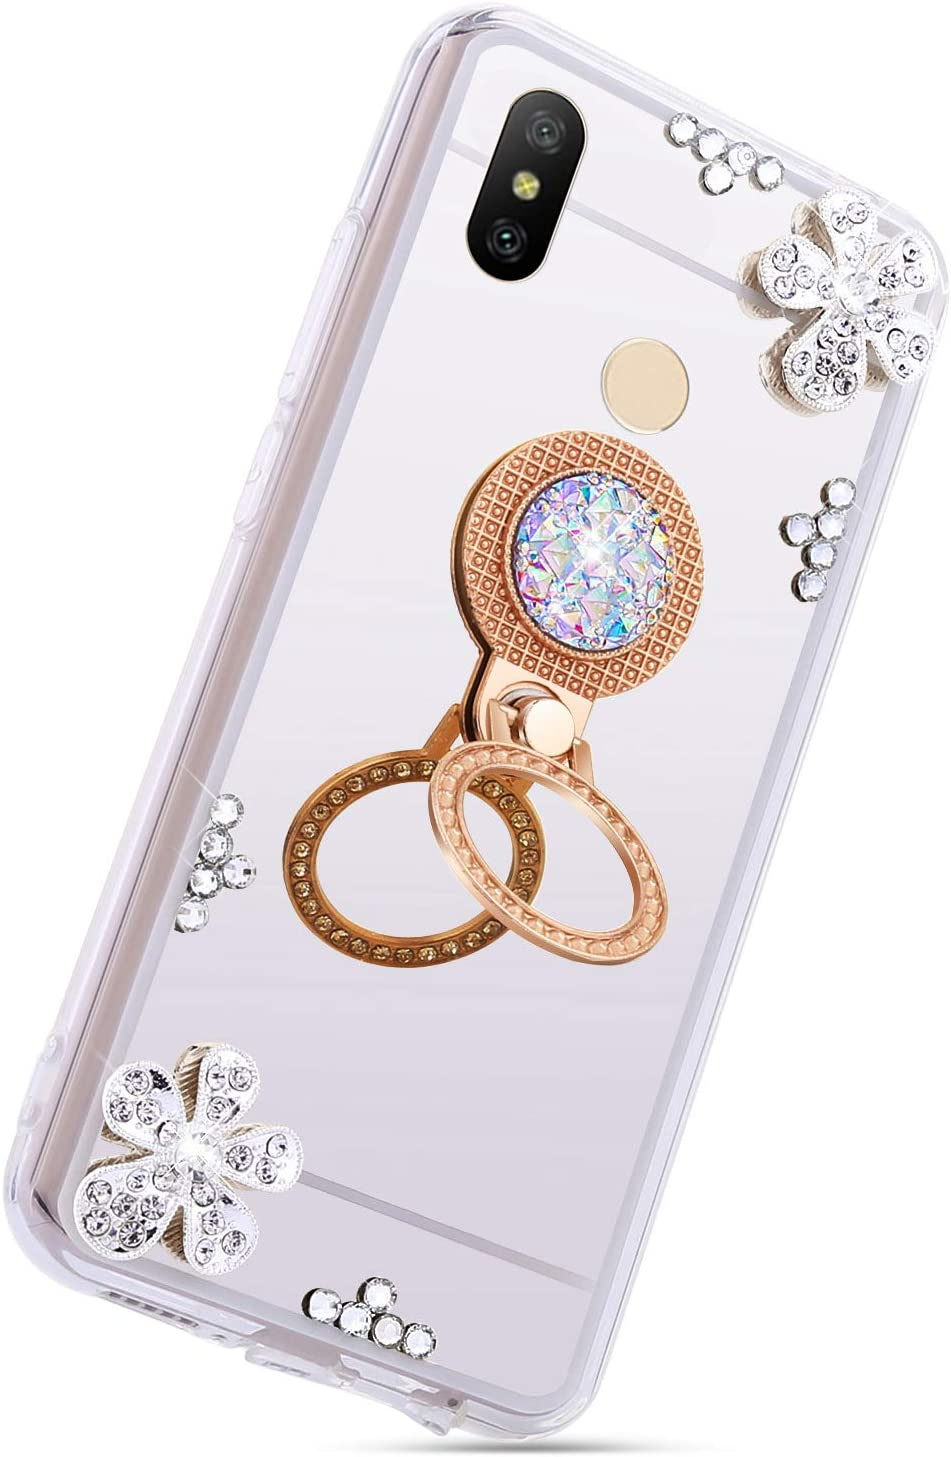 Herbests Compatible with Huawei P20 Lite 2019 Glitter Case Mirror Makeup Case Luxury Crystal Rhinestone Diamond Bling Soft Silicone Rubber TPU Protective Cover with Ring Stand Holder,Gold